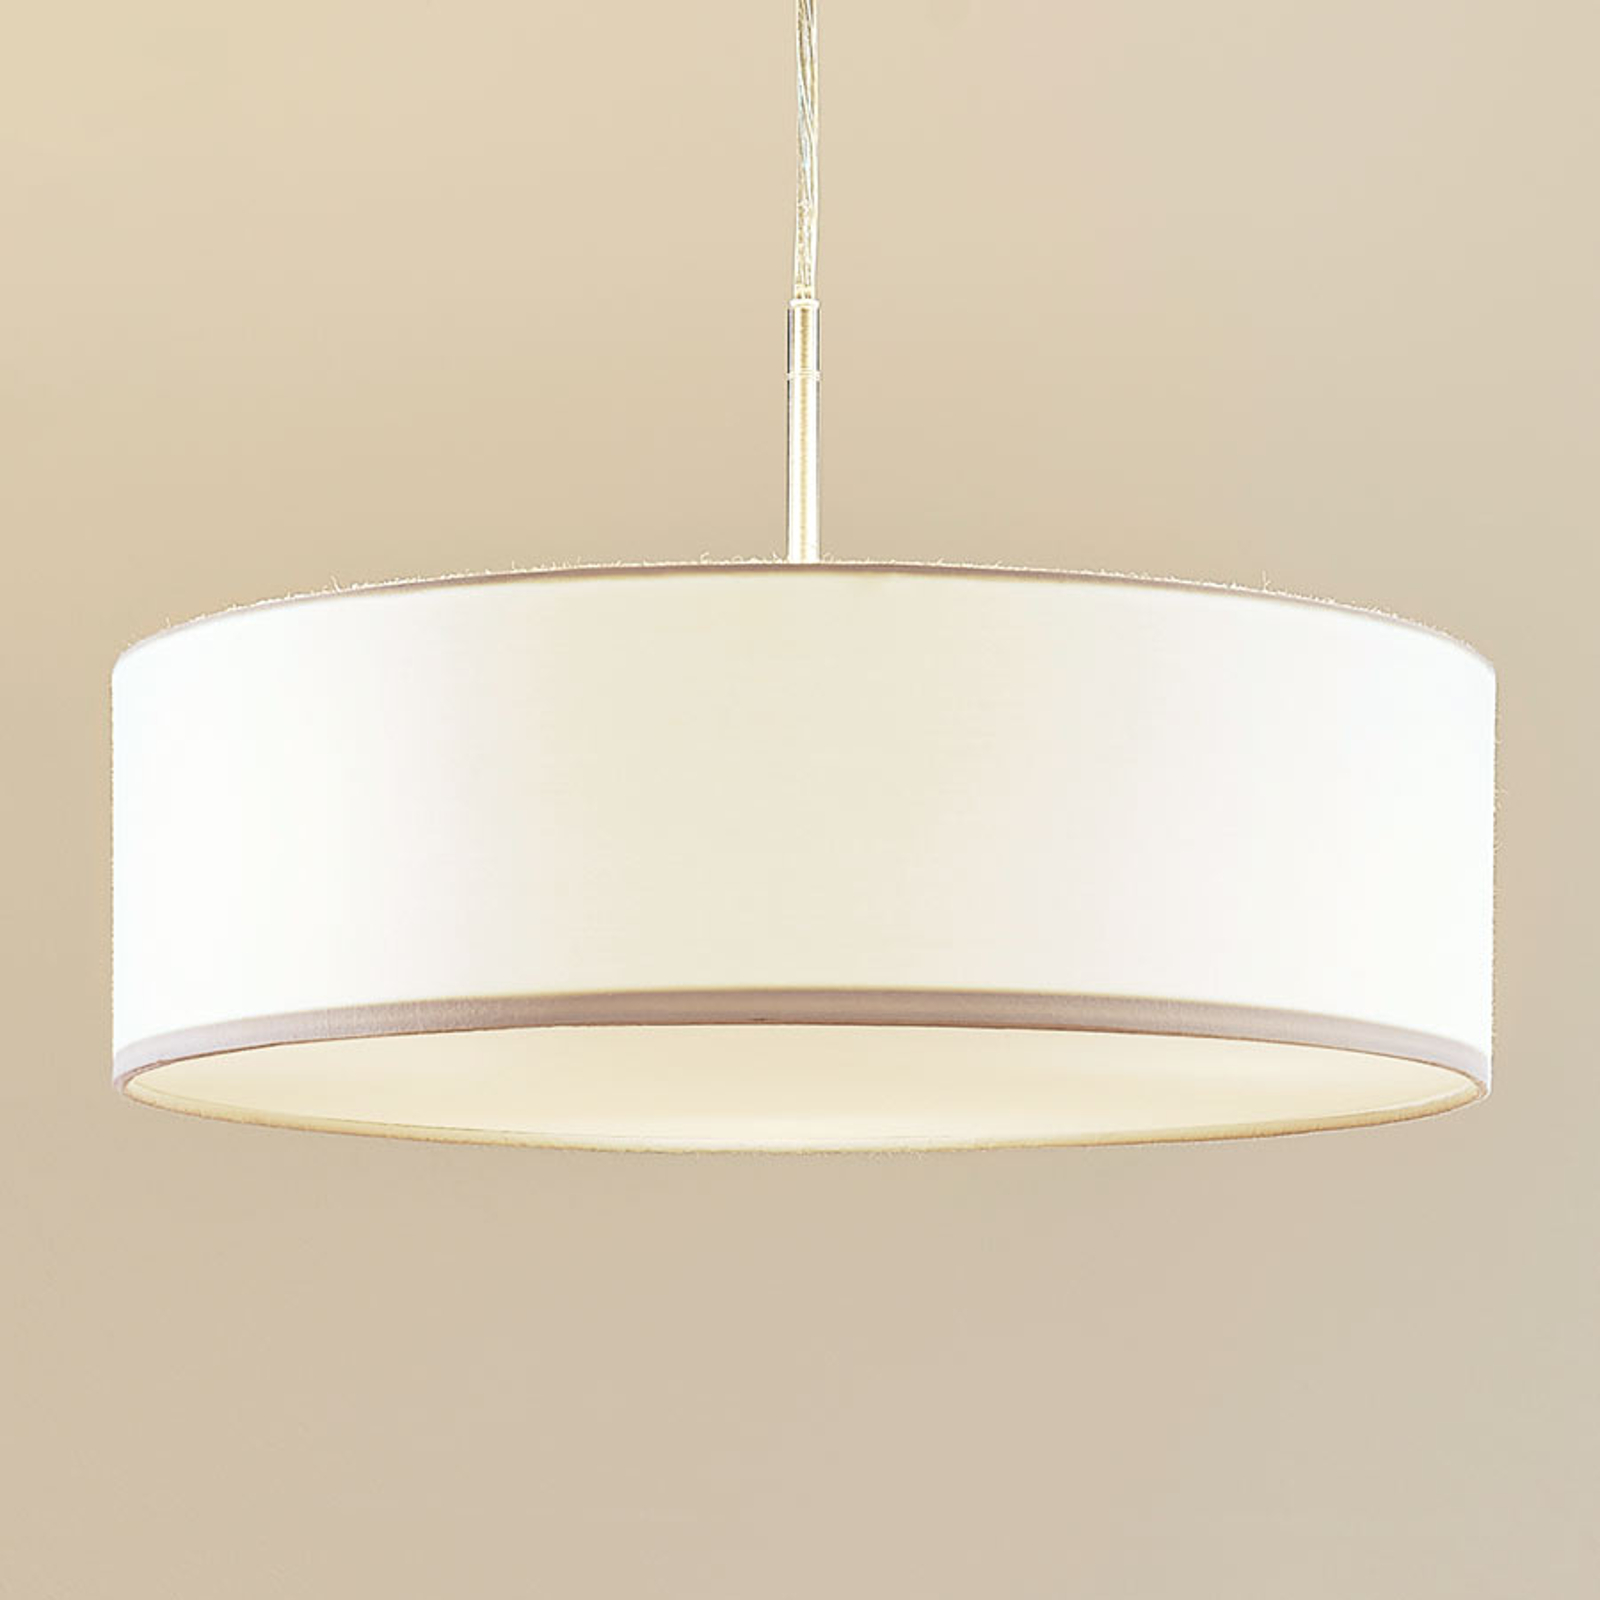 Suspension en tissu Sebatin, blanc